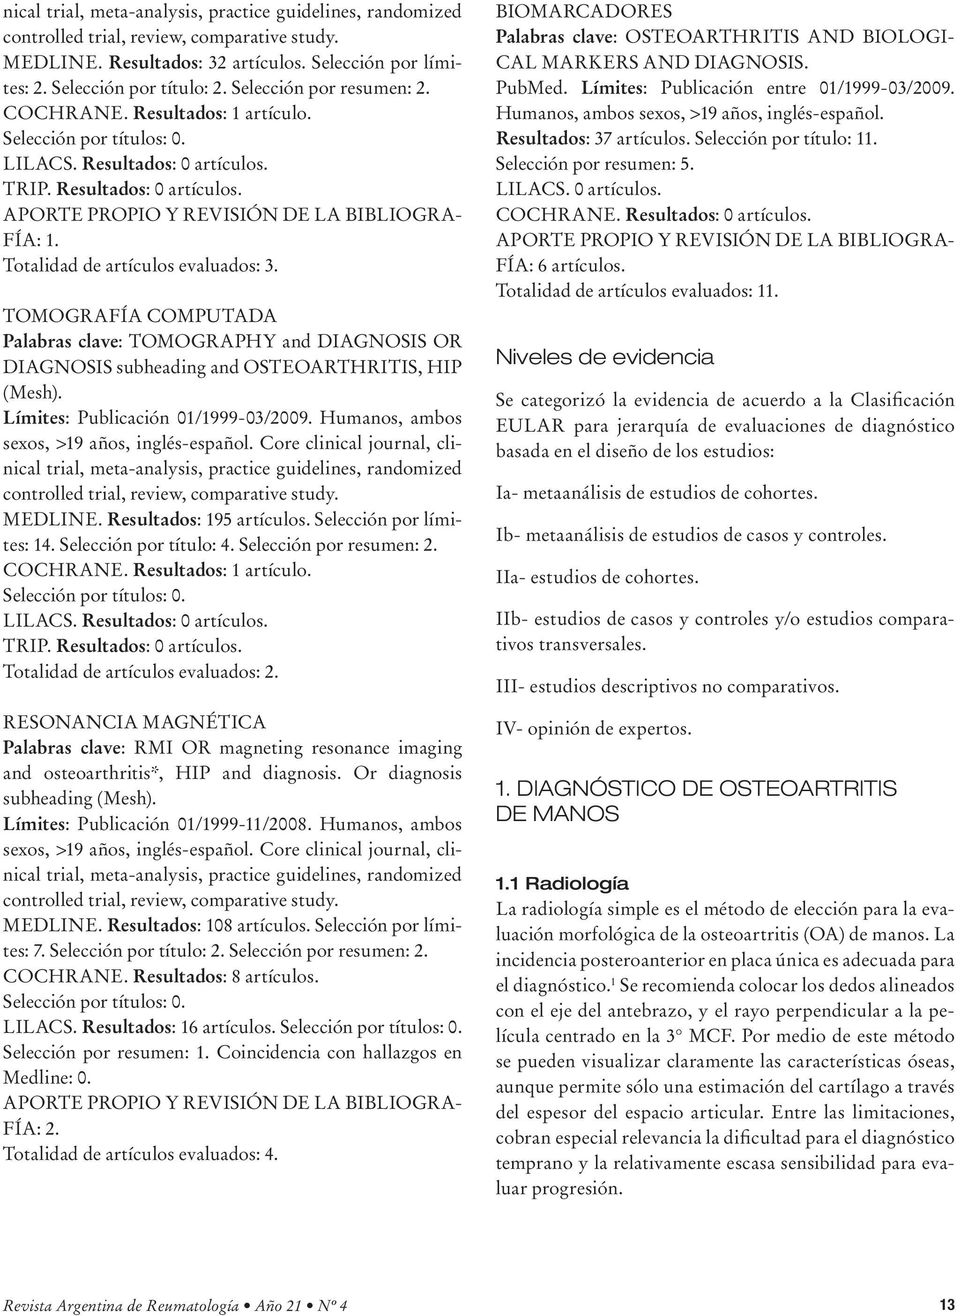 Totalidad de artículos evaluados: 3. TOMOGRAFÍA COMPUTADA Palabras clave: TOMOGRAPHY and DIAGNOSIS OR DIAGNOSIS subheading and OSTEOARTHRITIS, HIP (Mesh). Límites: Publicación 01/1999-03/2009.